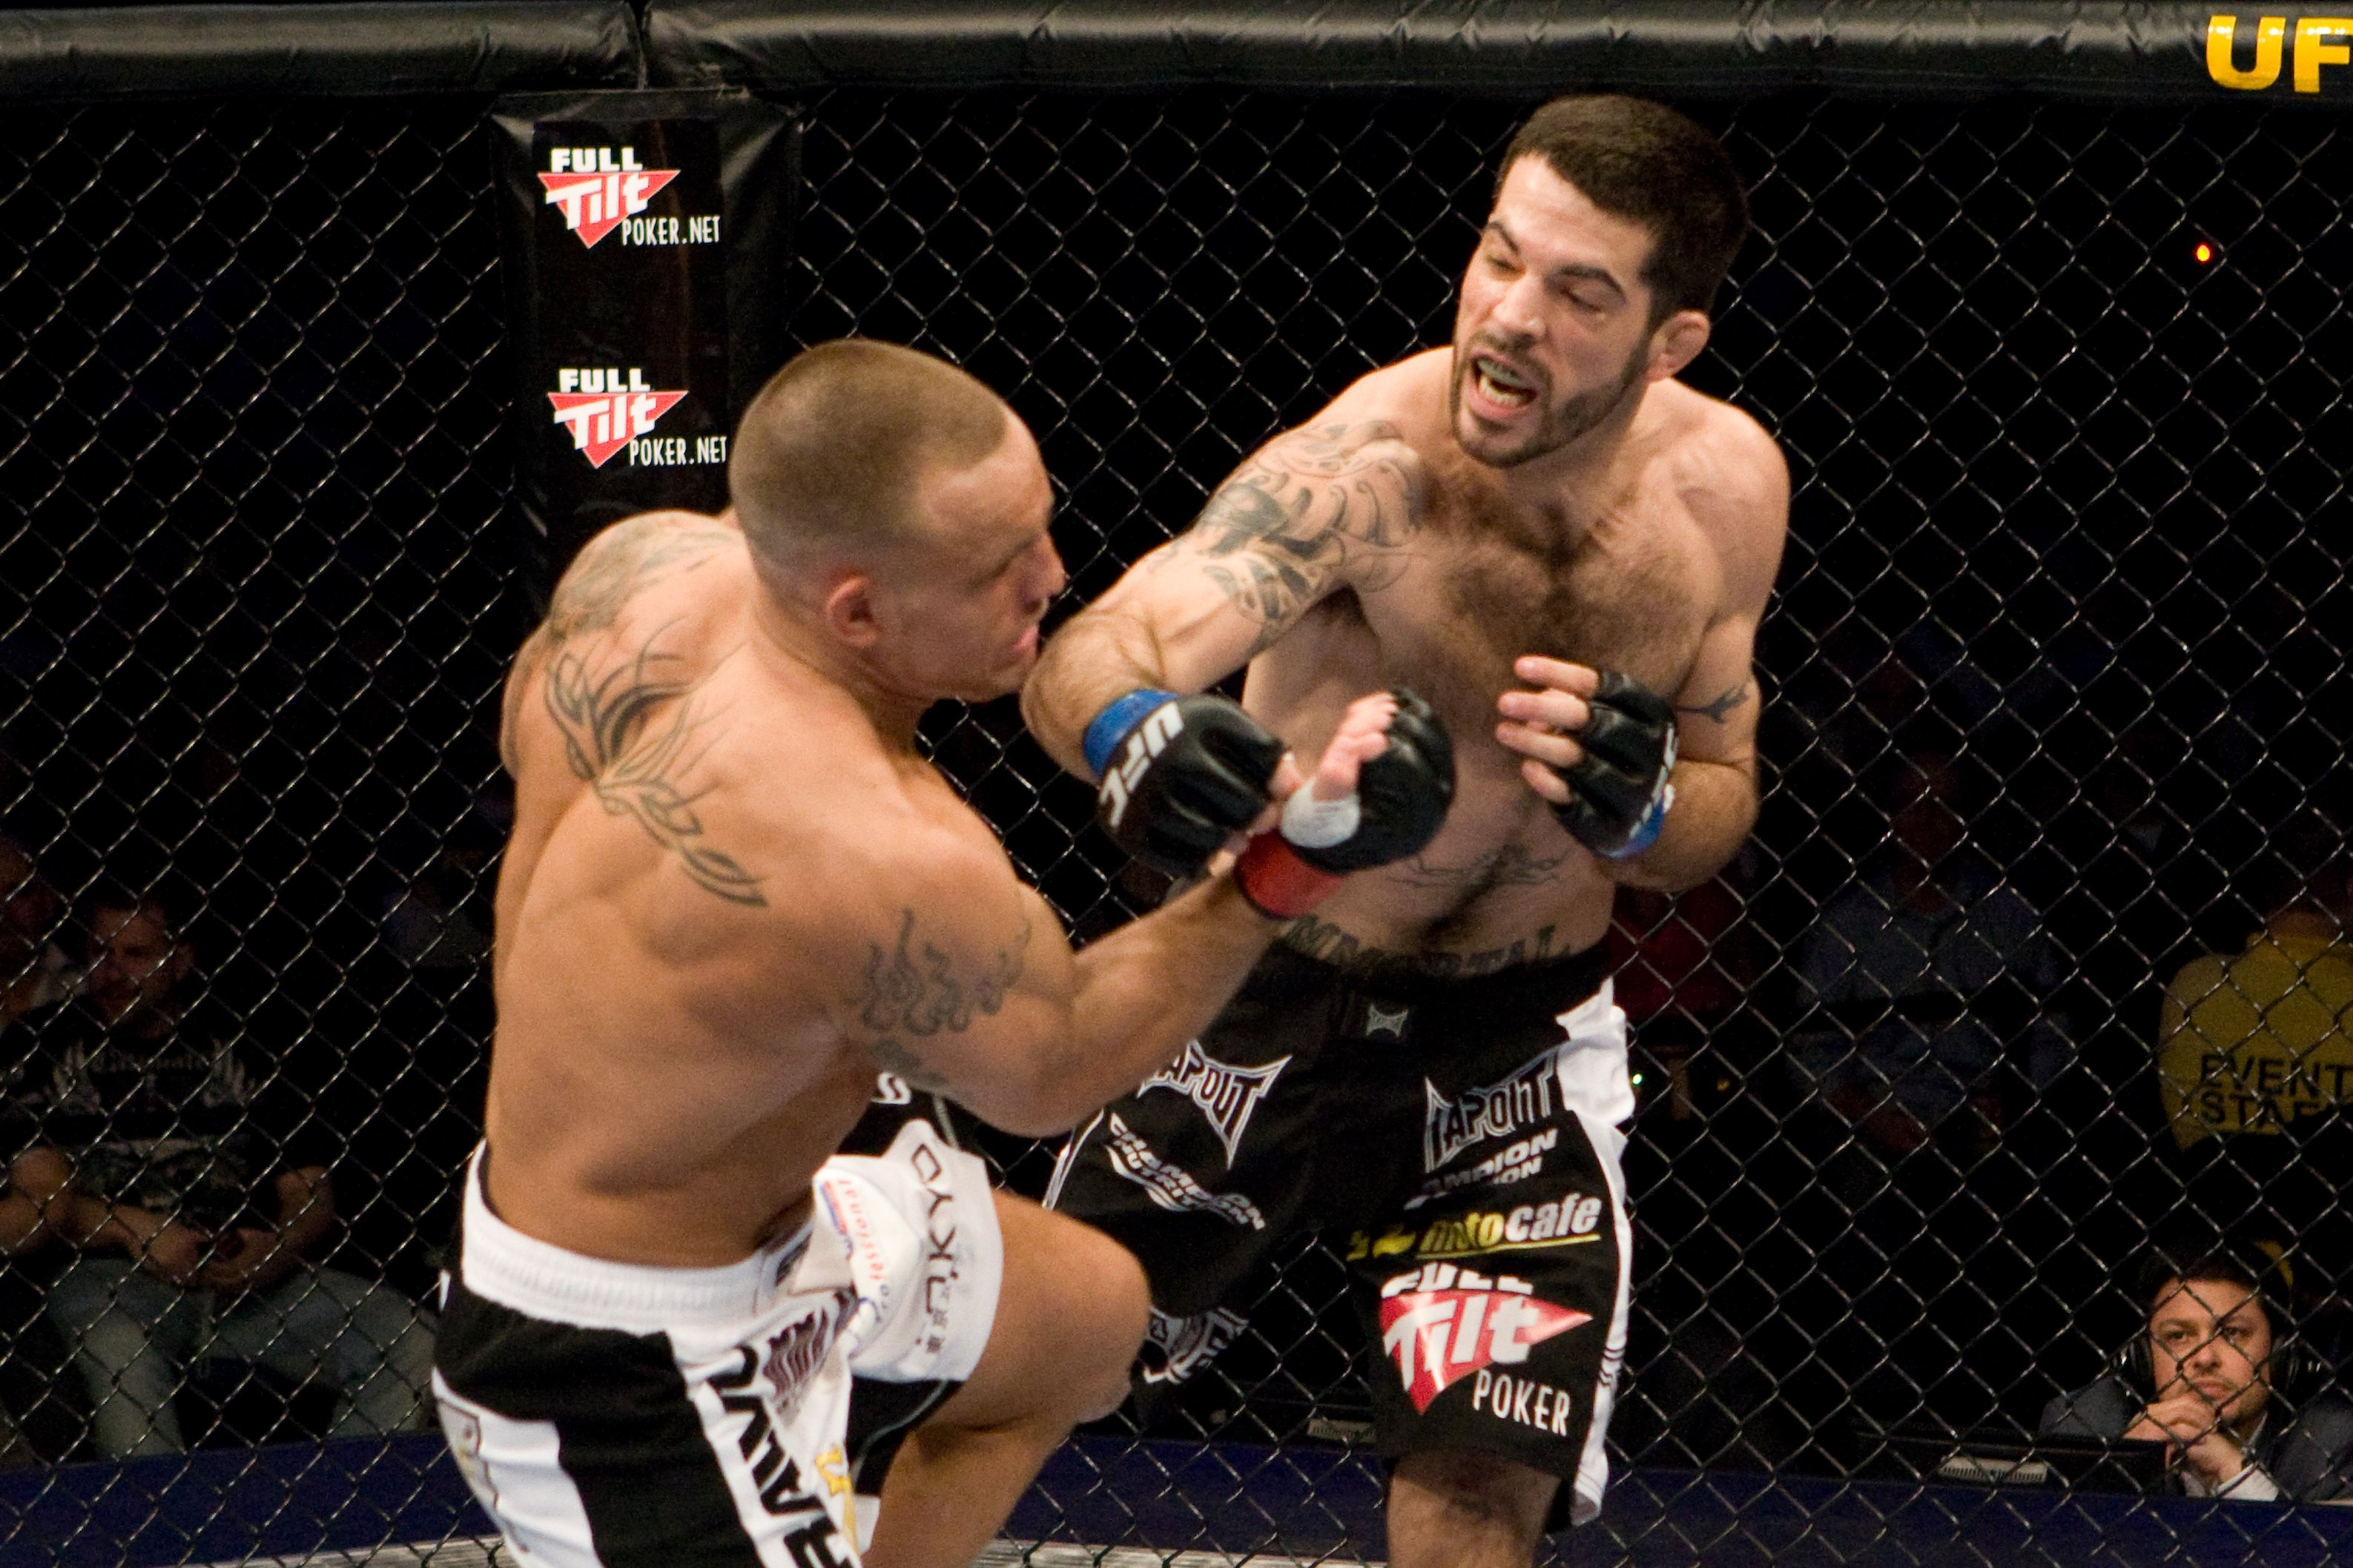 Matt Brown (unofficially) TKOd Pete Sell twice during their UFC 96 fight in 2009.